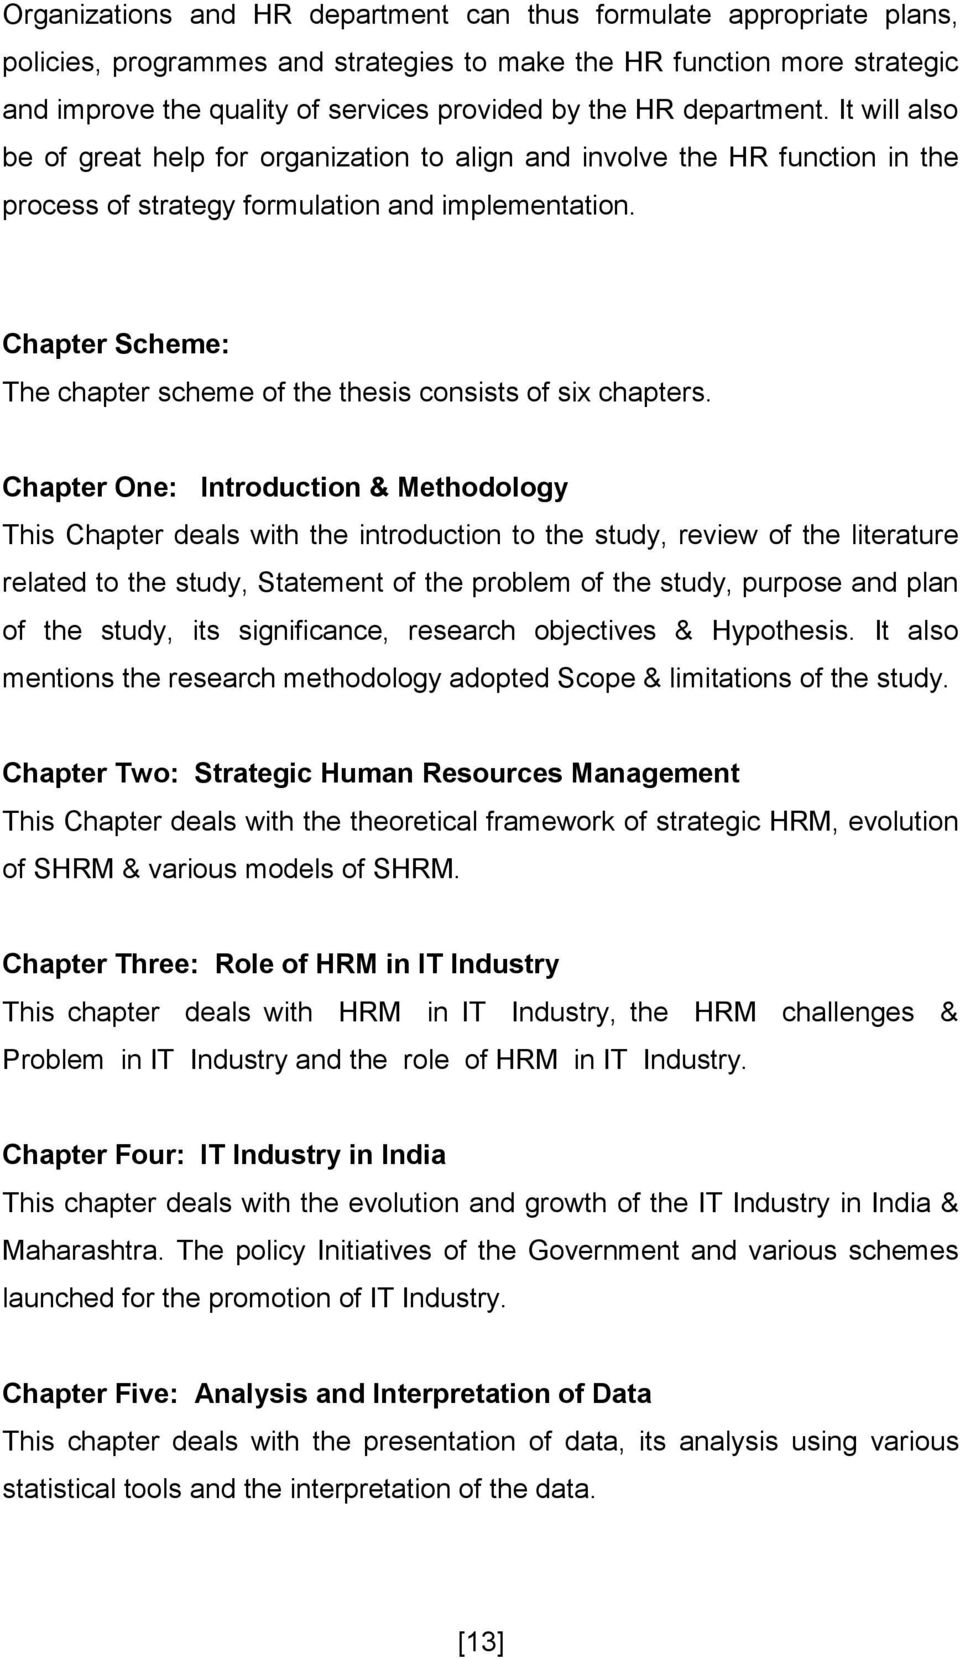 Chapter Scheme: The chapter scheme of the thesis consists of six chapters.